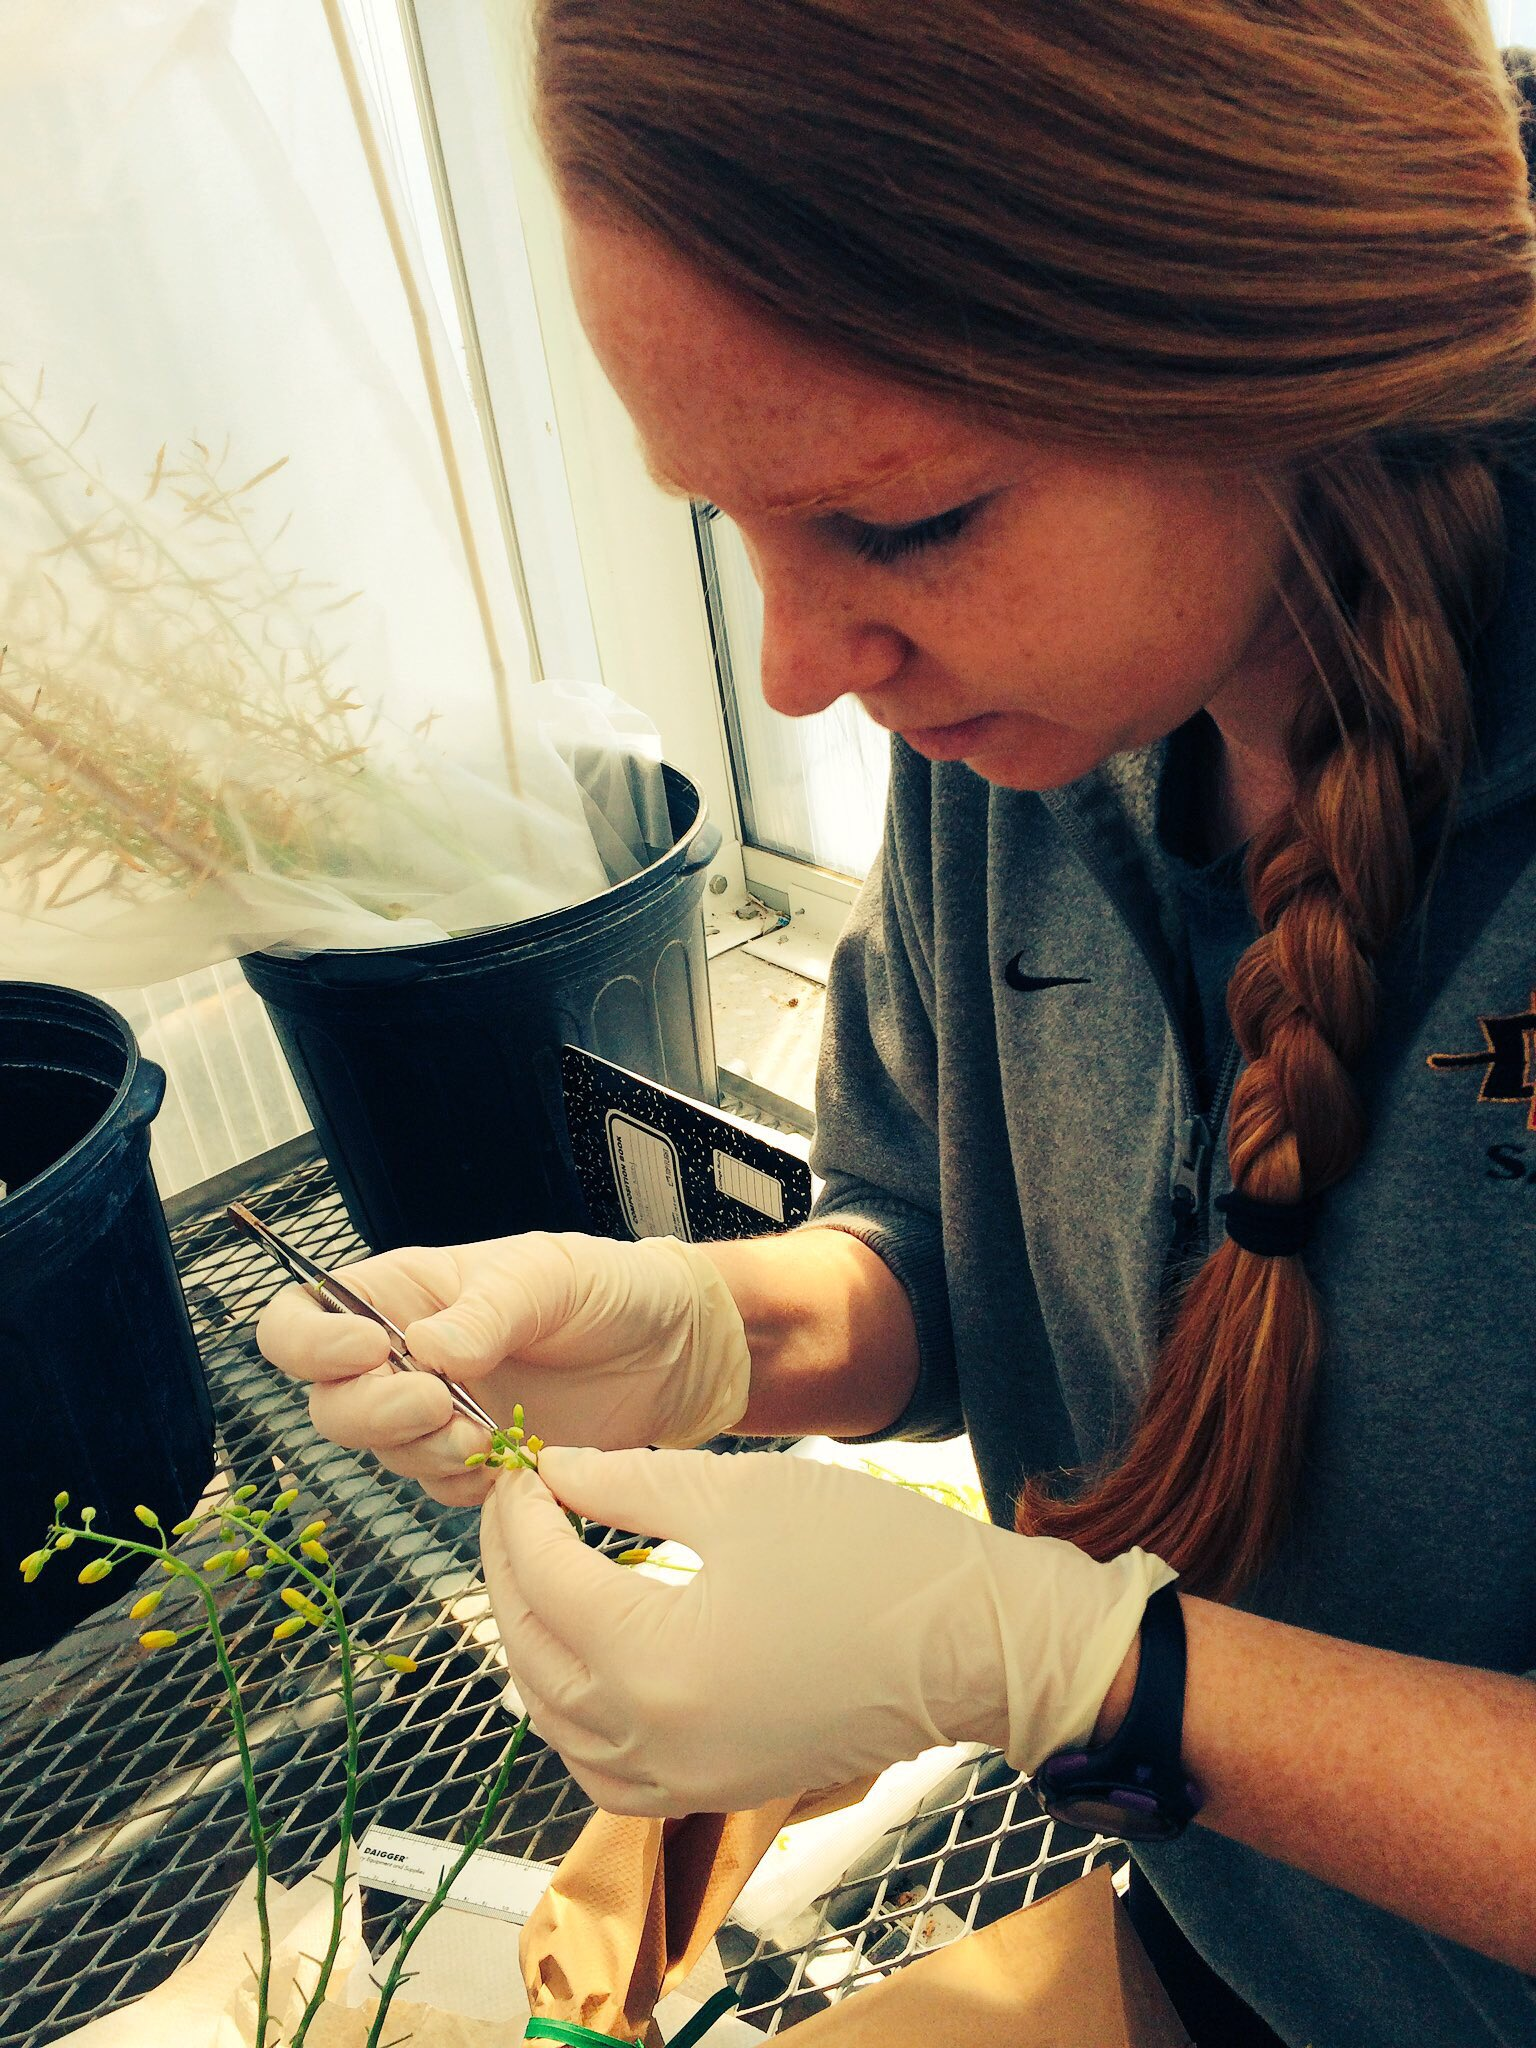 I'm an #actuallivingscientist studying how plants are related to one another. While doing so I always #DressLikeAWoman! https://t.co/glg0MLawiC